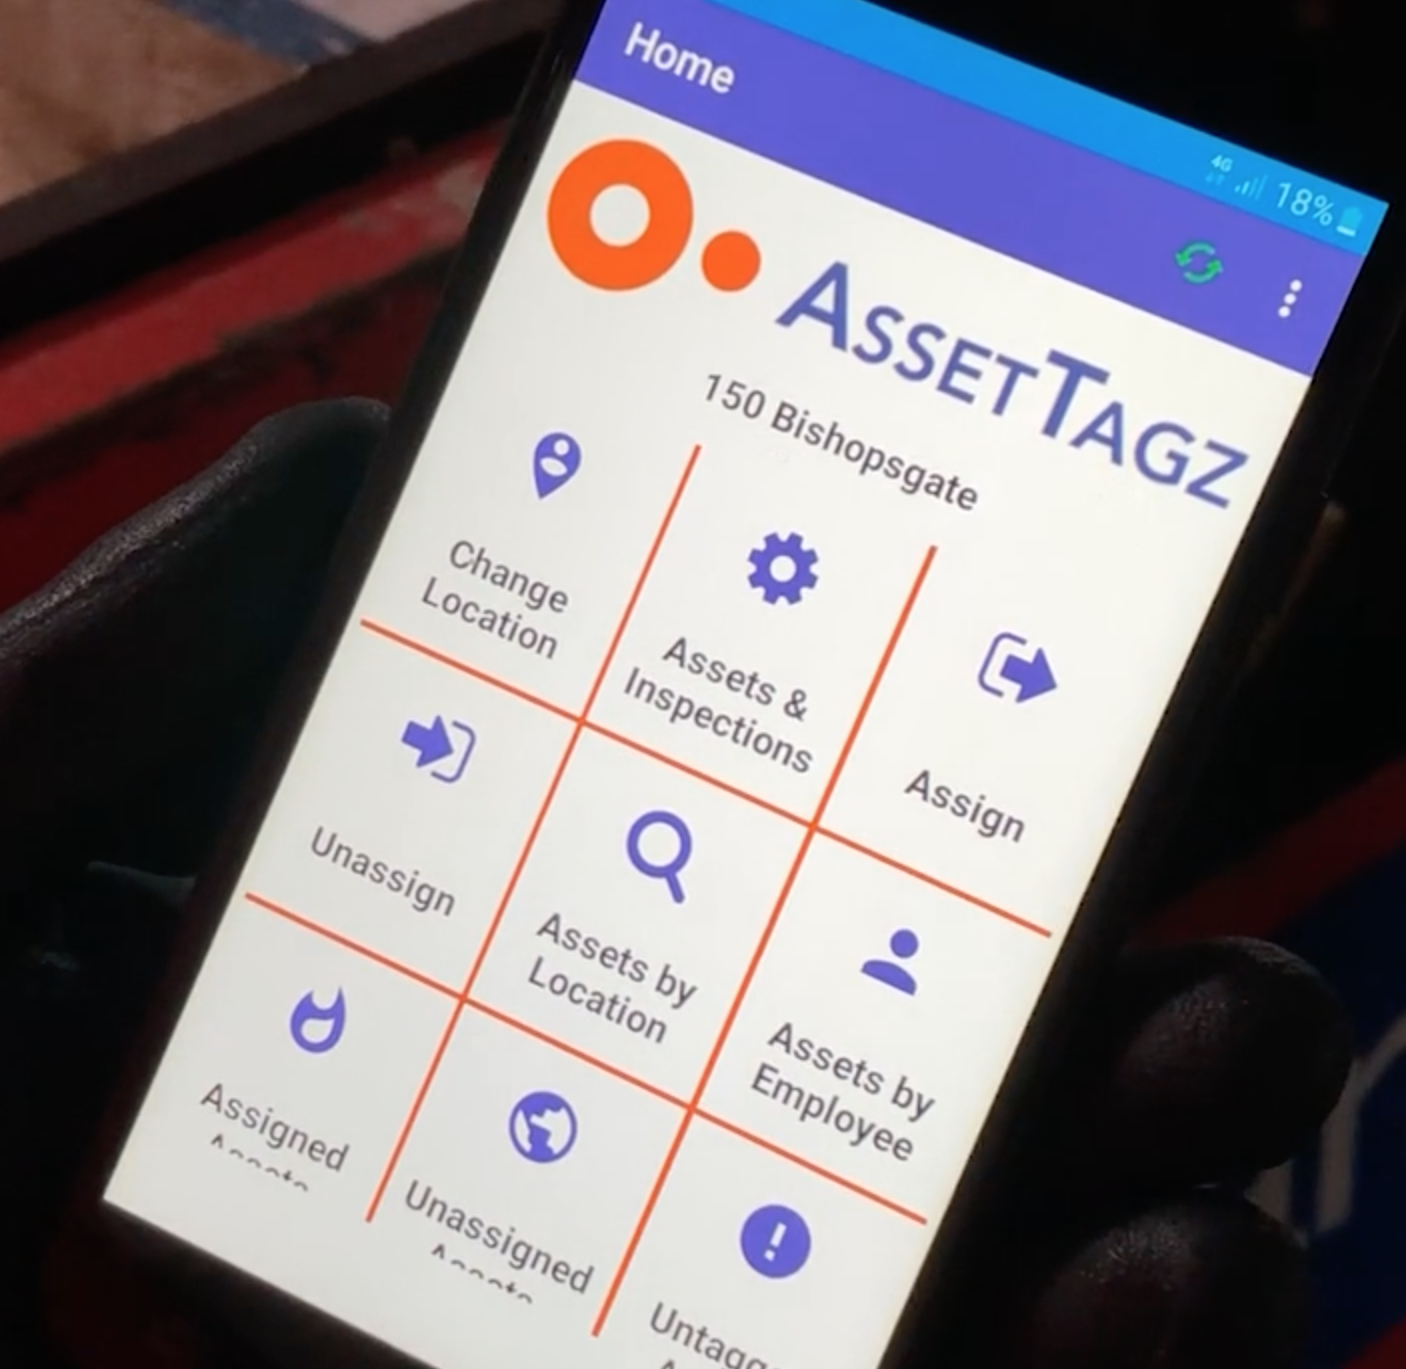 Rugged device with Assettagz app